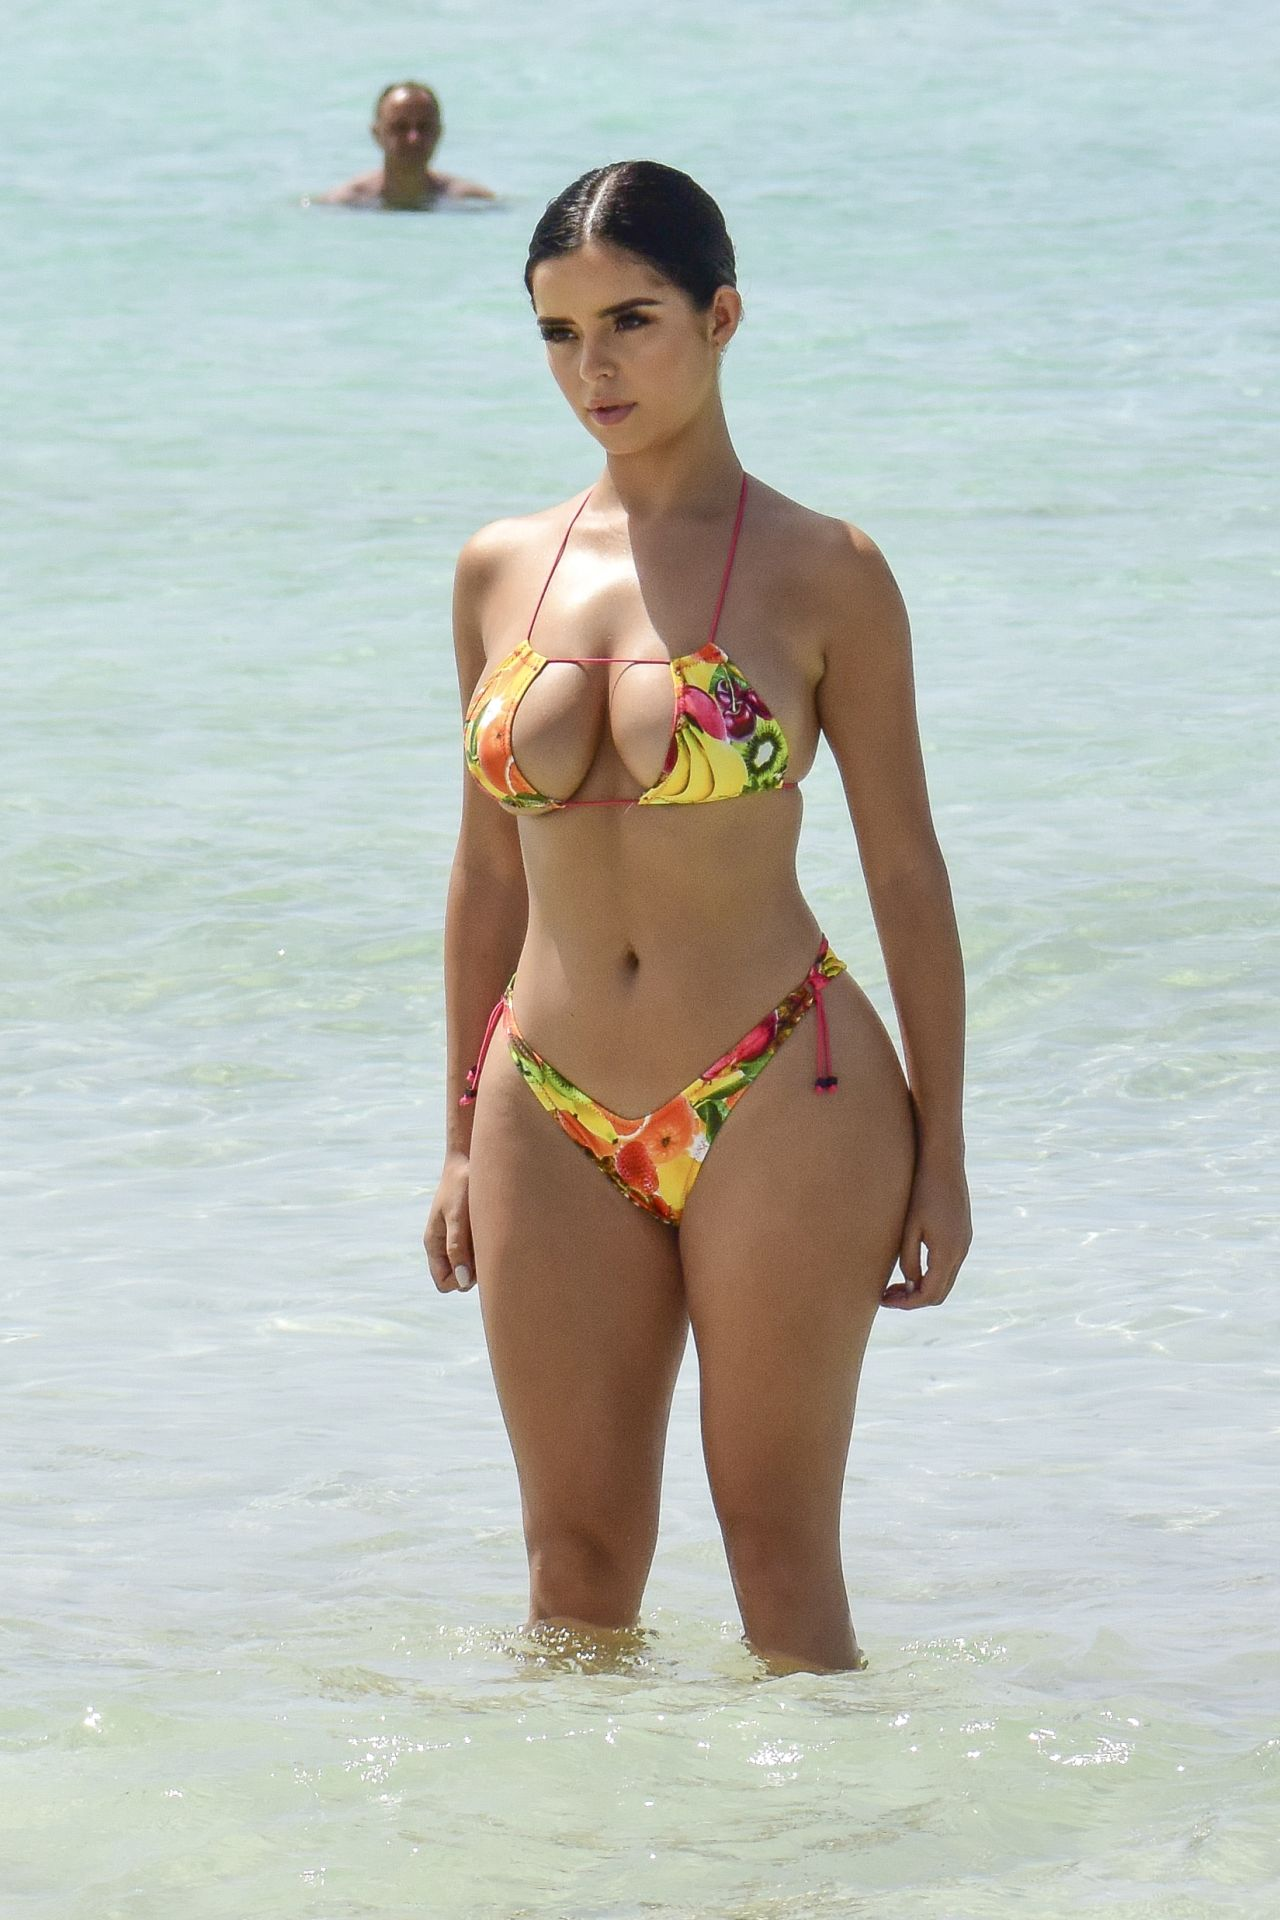 Demi Rose in Pink Bikini at a Beach in Cape Verde Pic 7 of 35